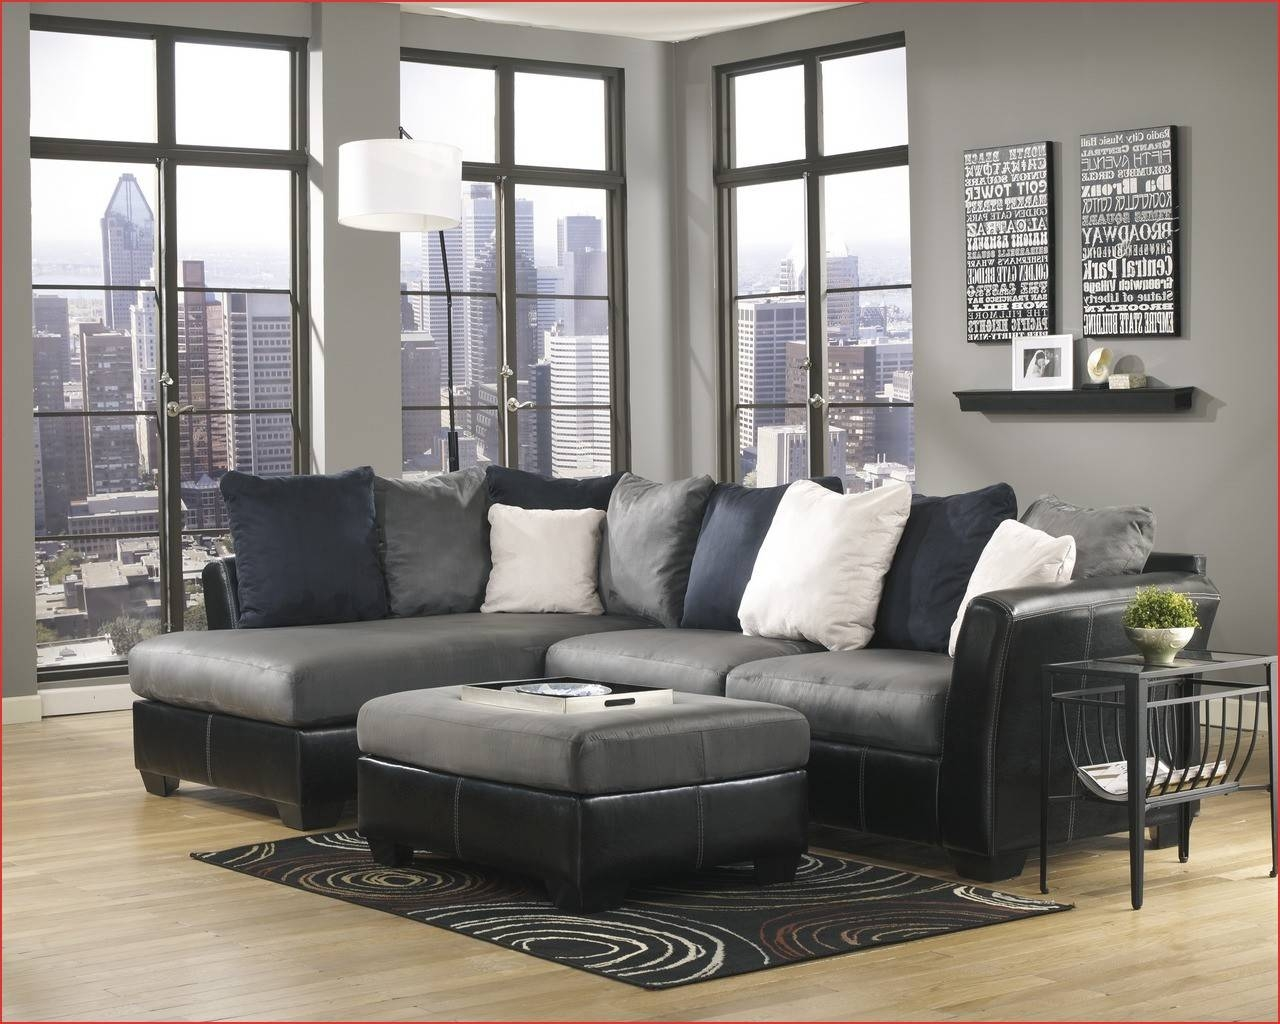 Sectional Sofas Rochester Ny – Thesecretconsul For Rochester Sectional Sofas (View 10 of 15)